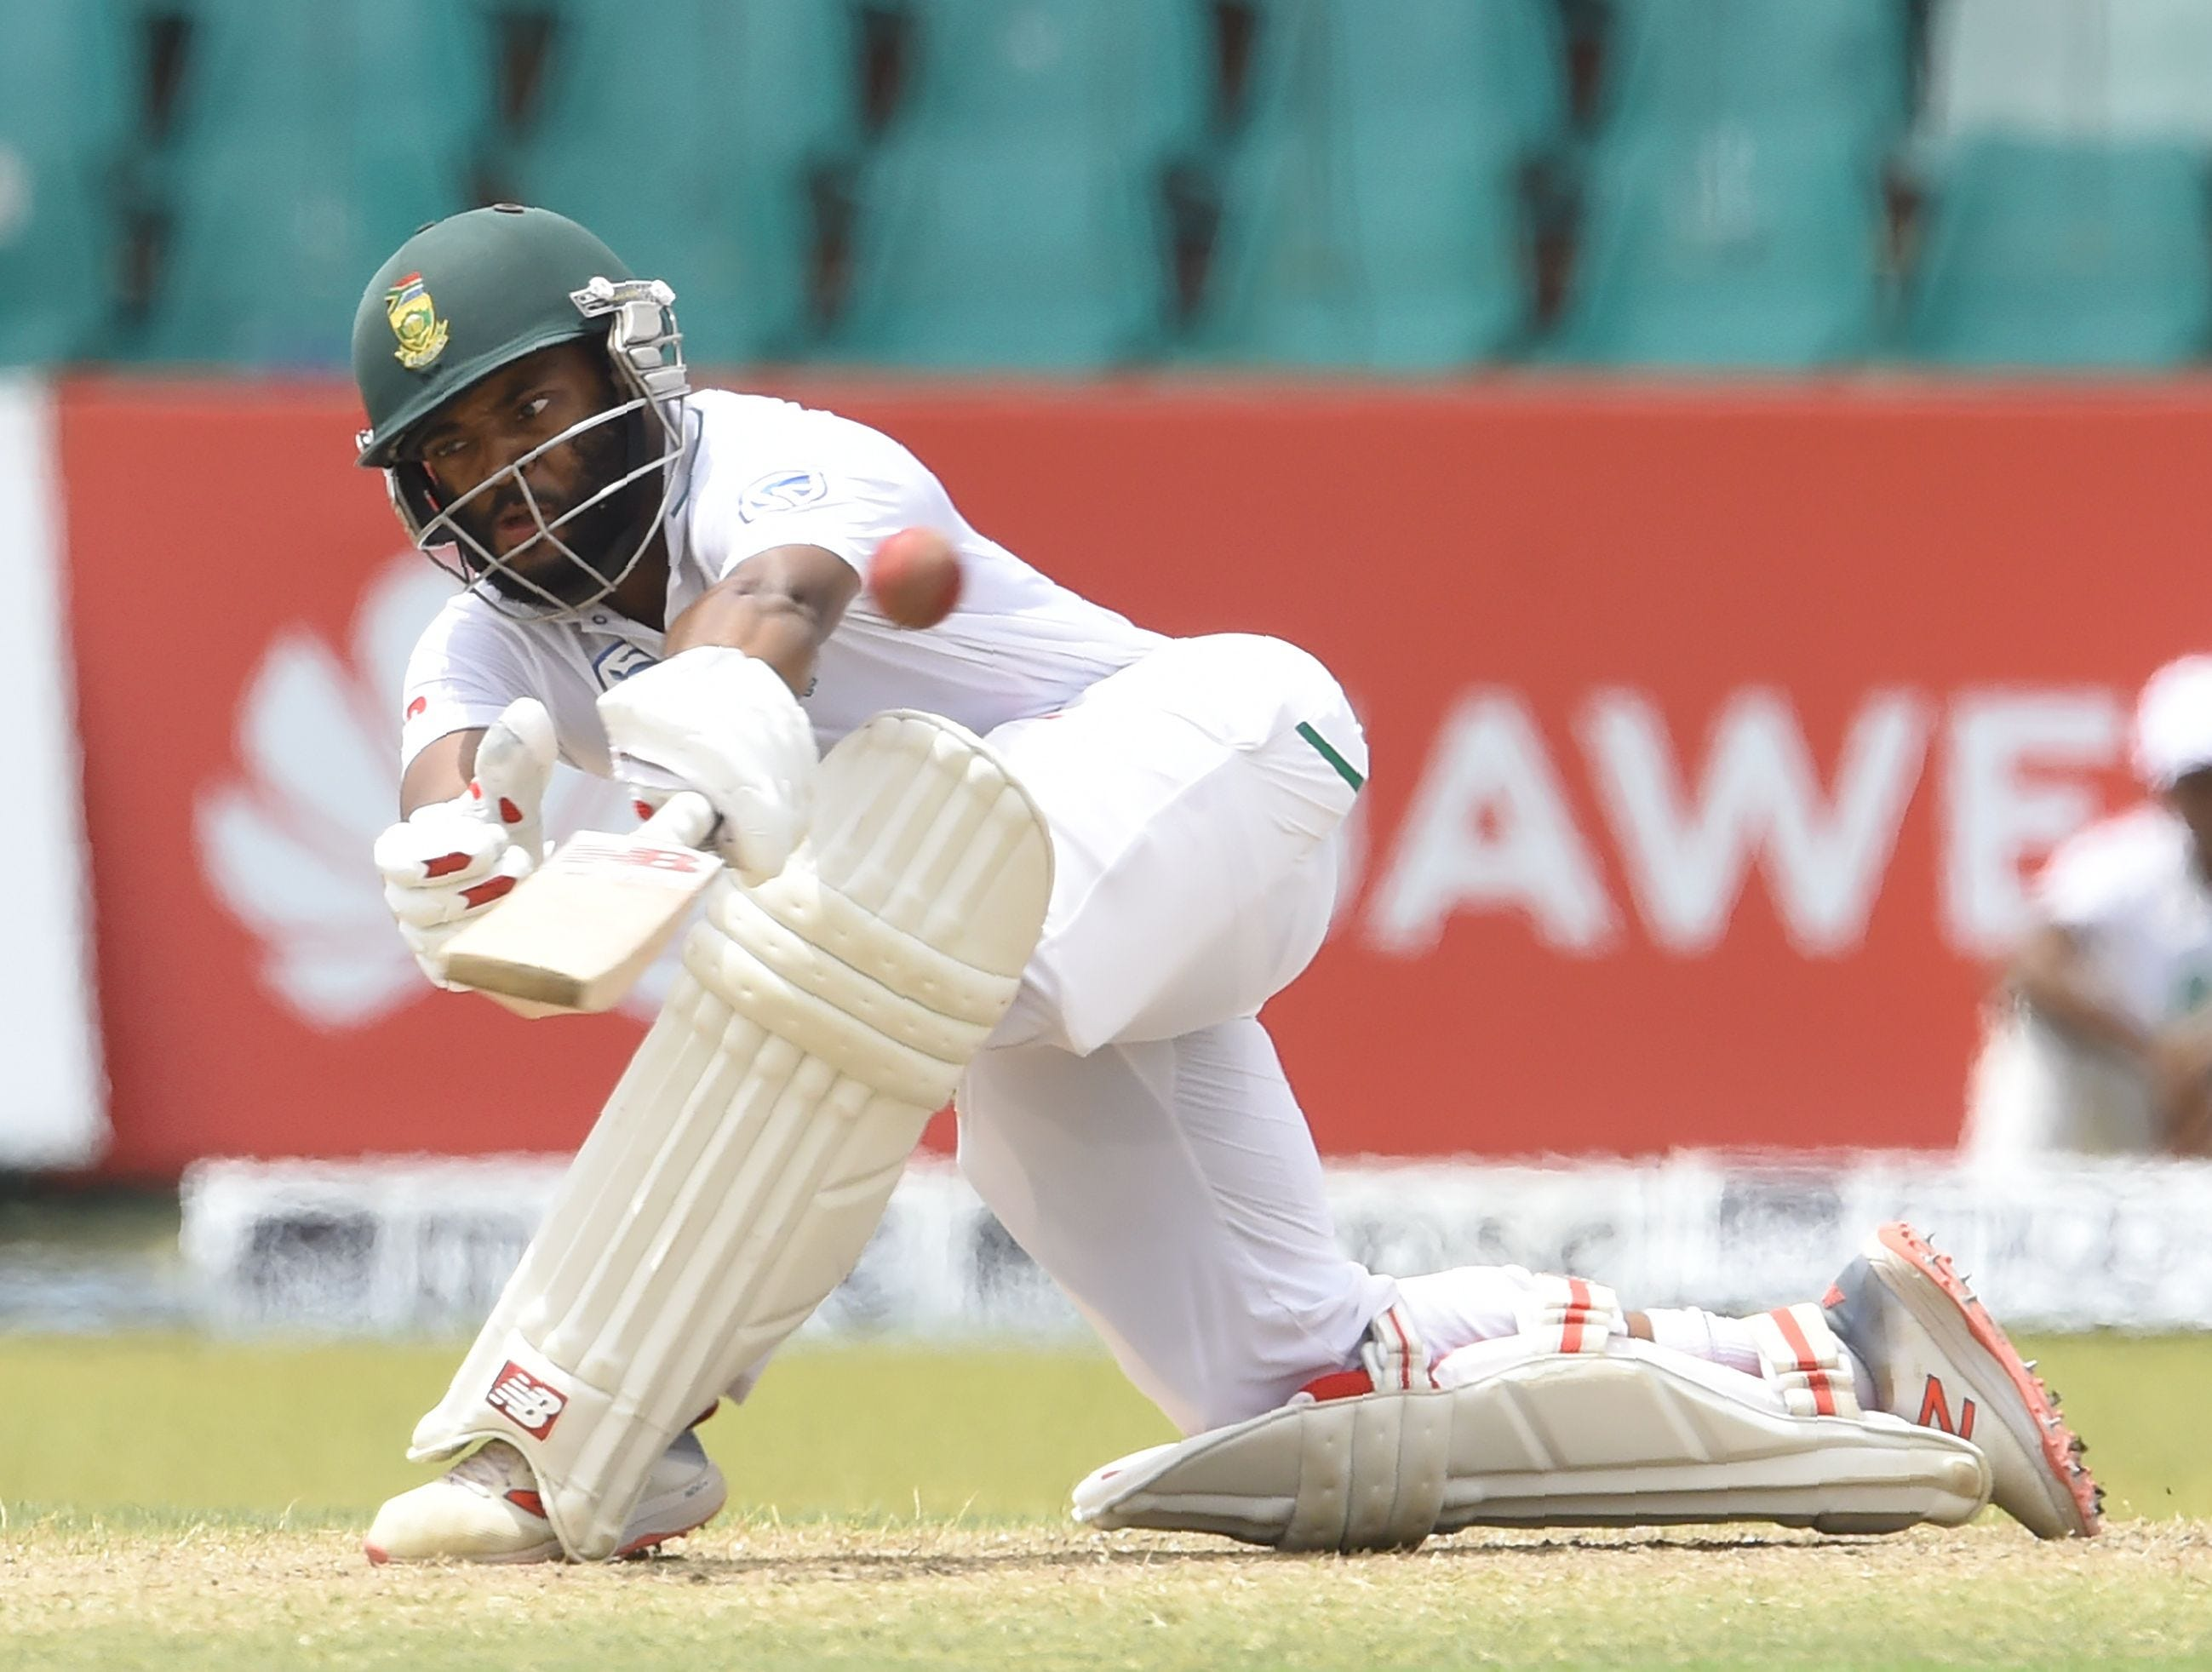 South Africa's Temba Bavuma plays a shot during the fourth day of their second Test match between Sri Lanka and South Africa at the Sinhalese Sports Club (SSC) international cricket stadium in Colombo, Sri Lanka.